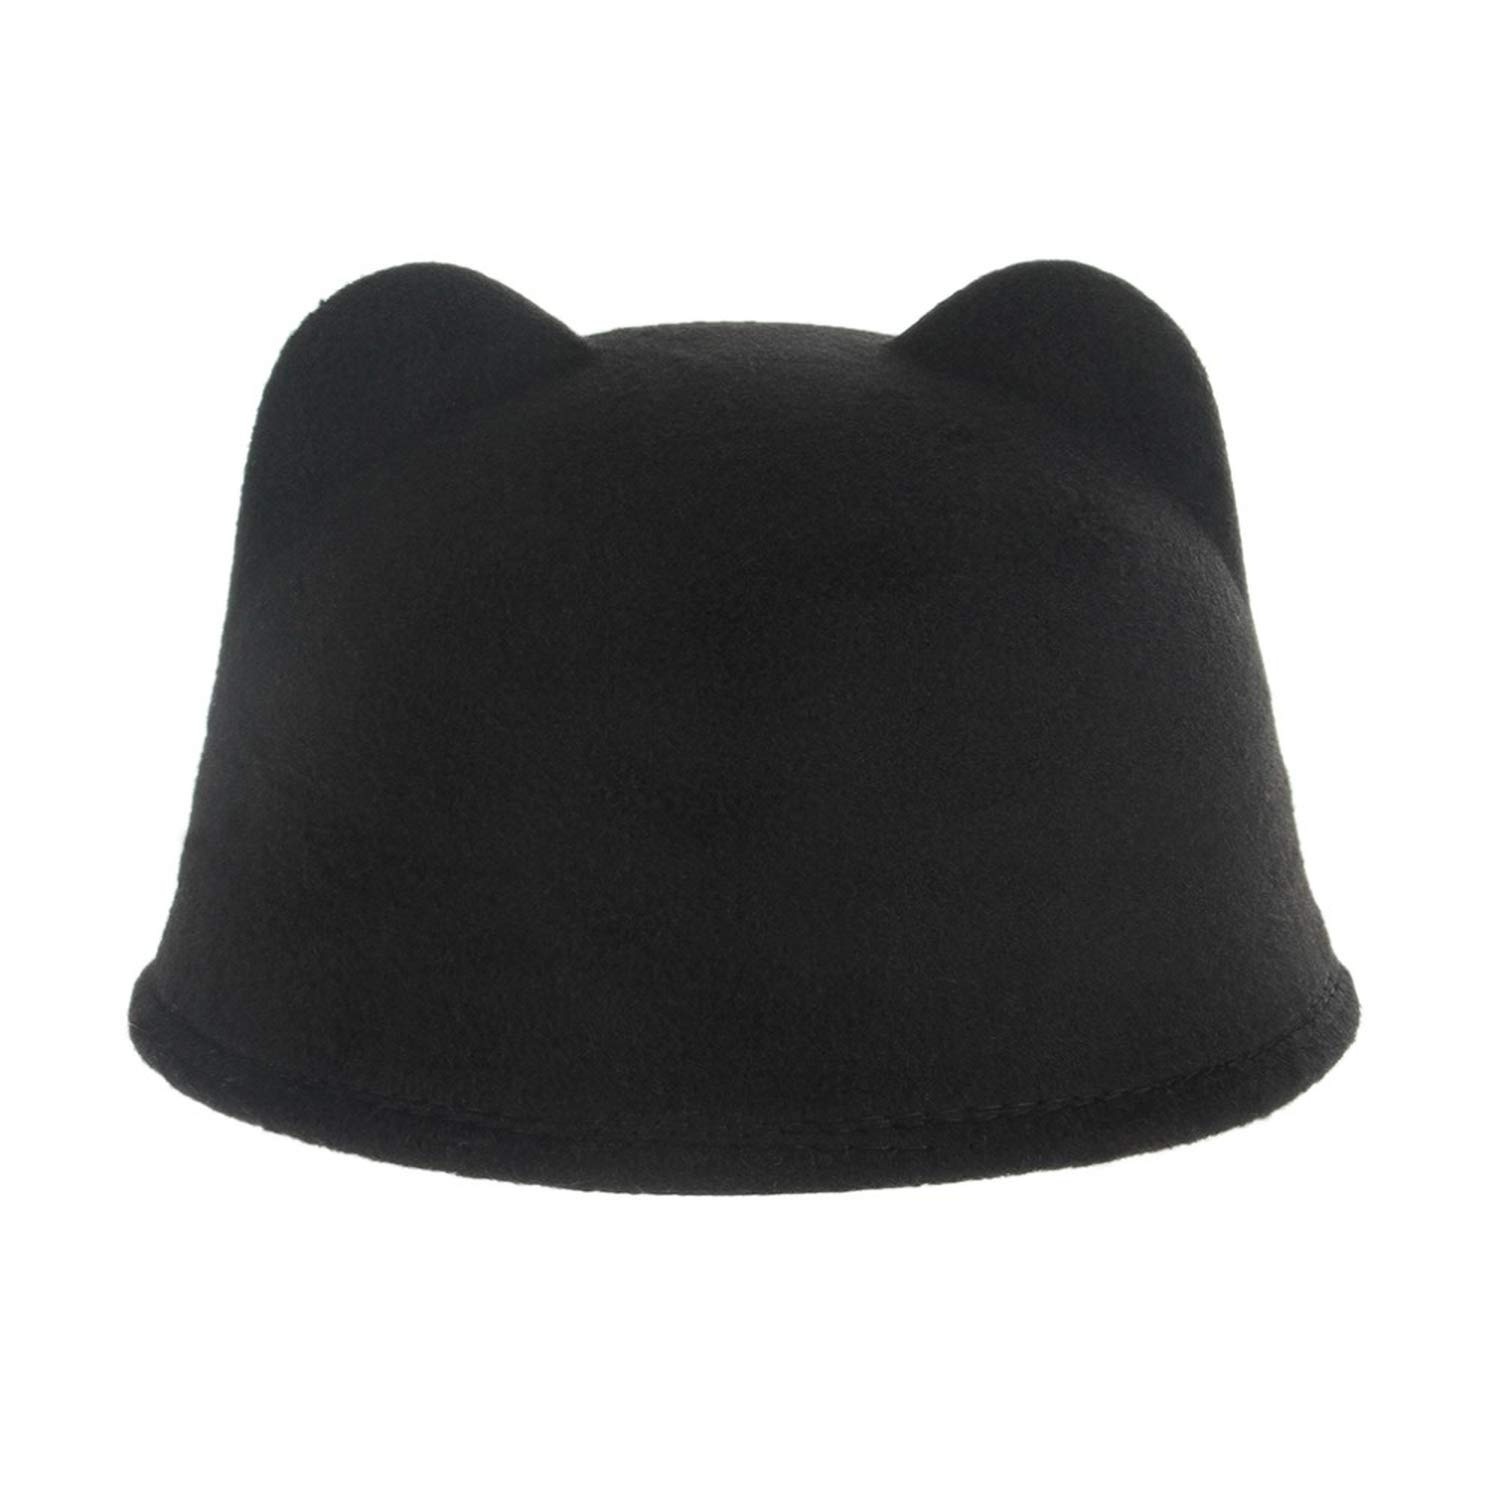 Baby Wool Knight Fedora Hats Cute Cat Caps Kids Girl Boy Autumn Winter Casual Apparel Accessories Hat